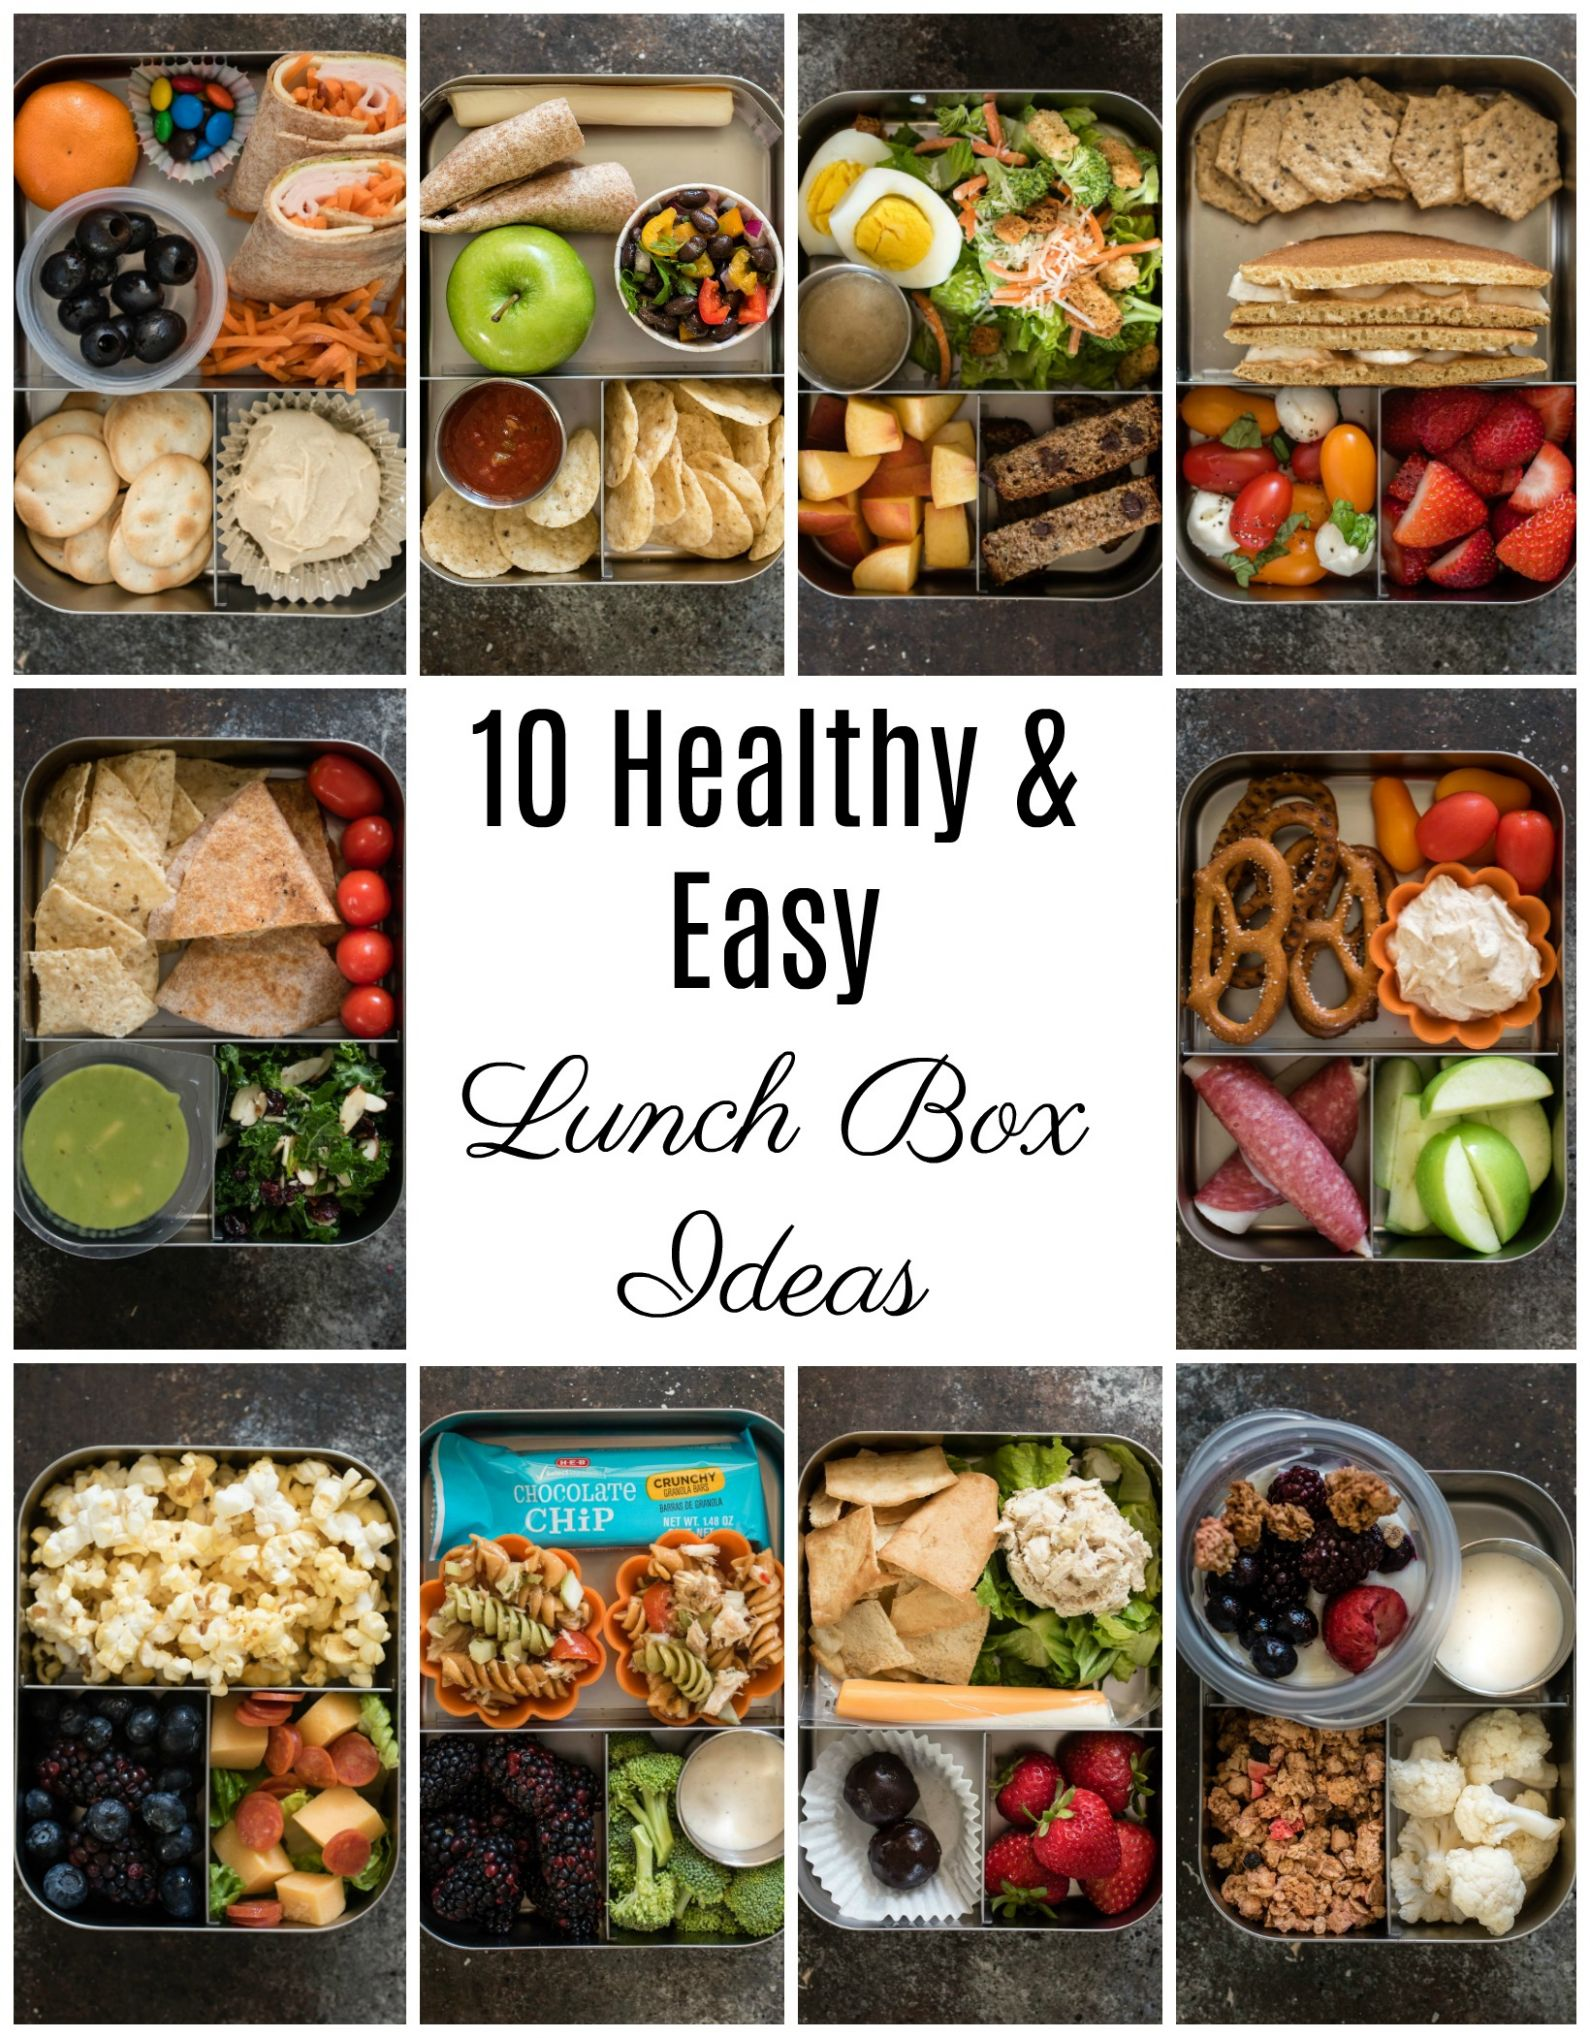 Pancake Sandwich and Healthy LunchBoxes